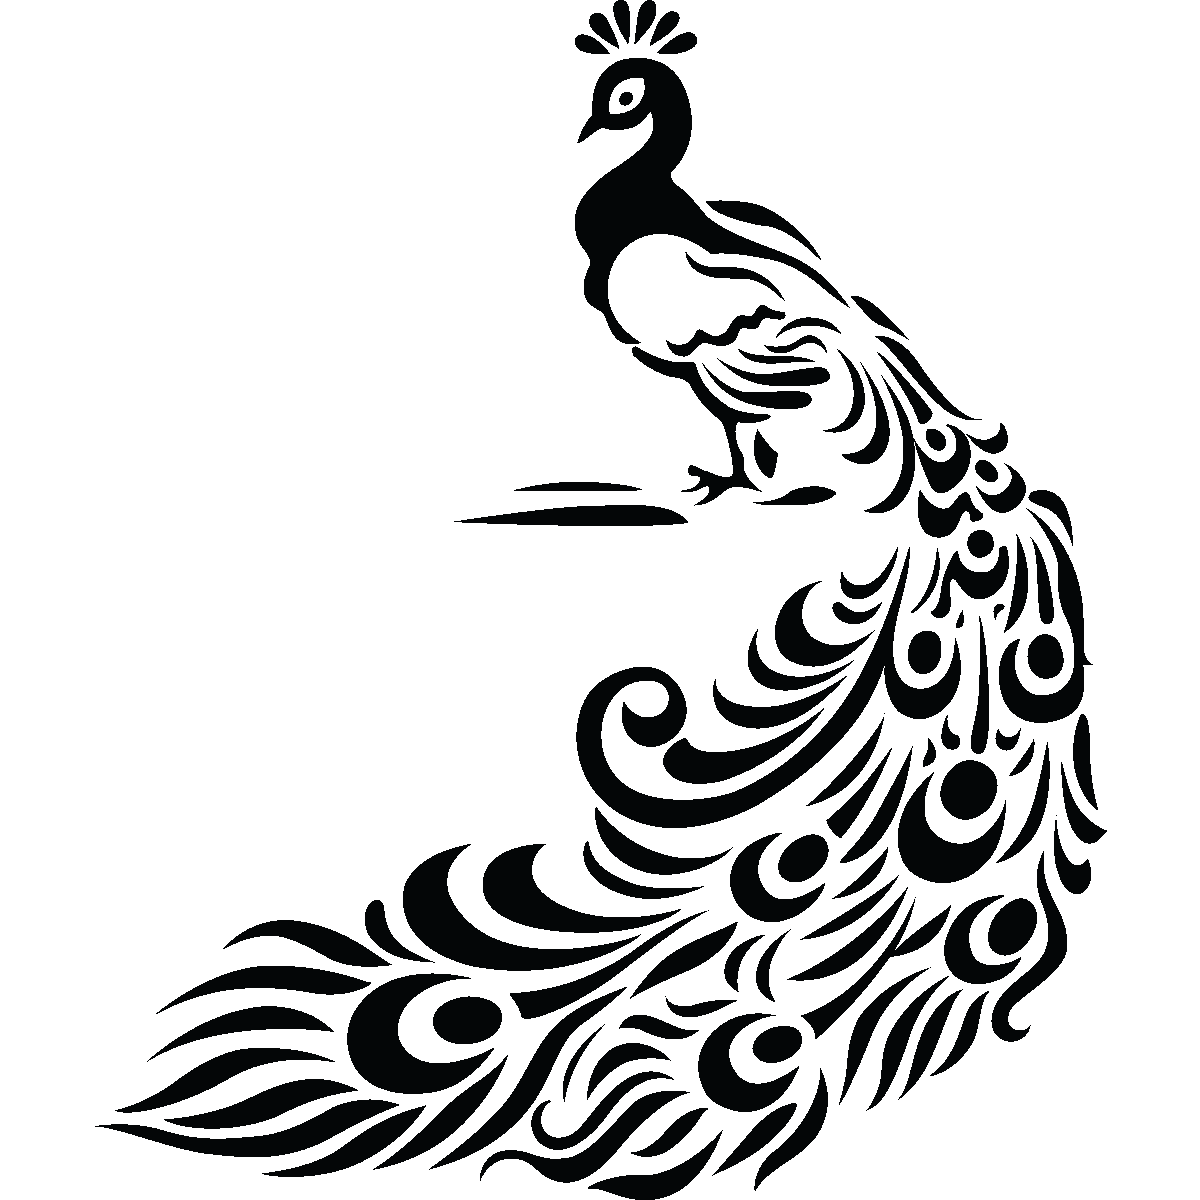 clipart black and white download Images for drawing master. Peacock feather clipart black and white